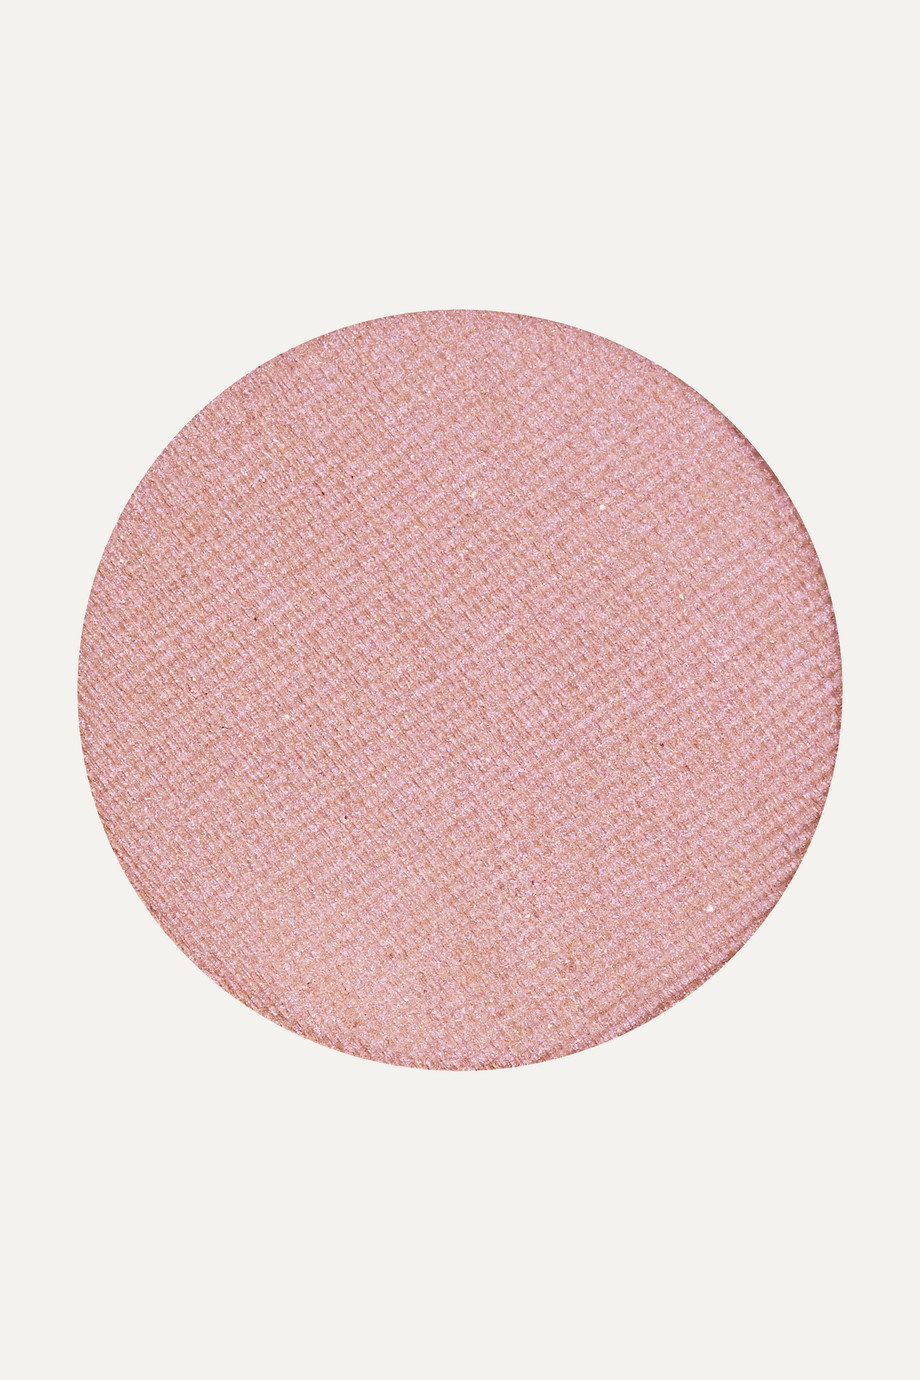 Kjaer Weis Eye Shadow - Angelic